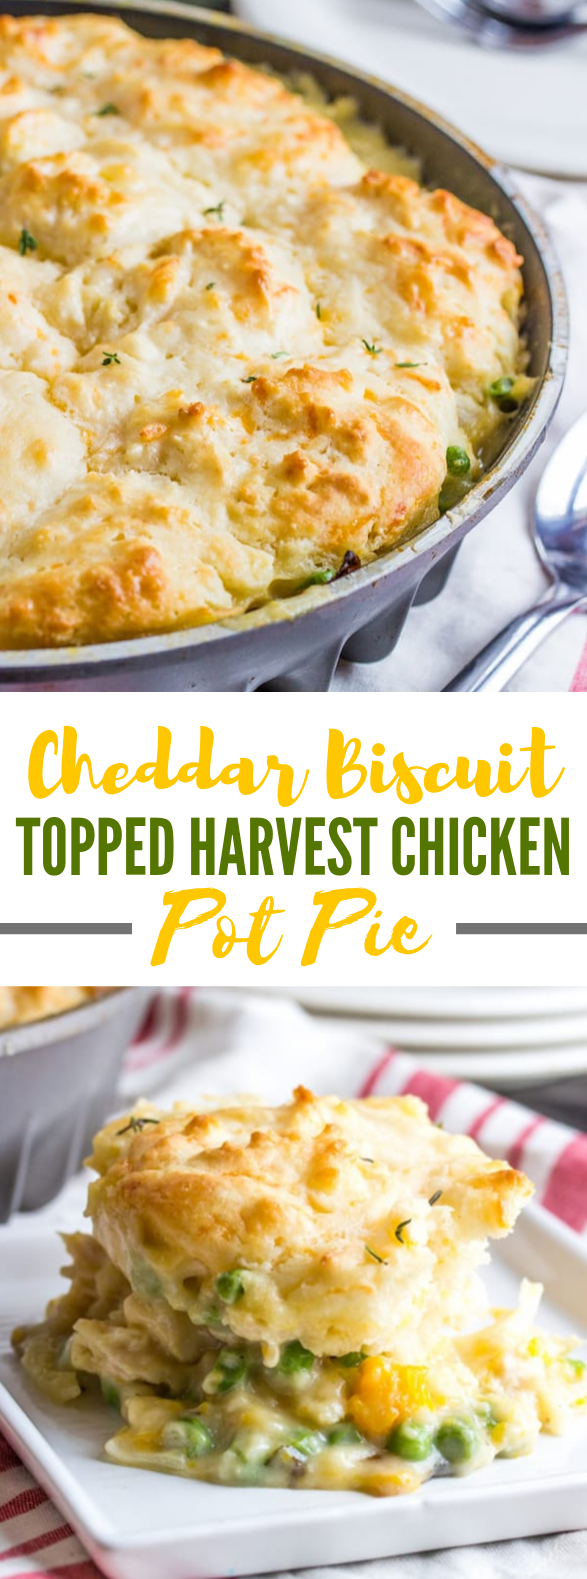 CHEDDAR BISCUIT TOPPED HARVEST CHICKEN POT PIE #dinner #veggies